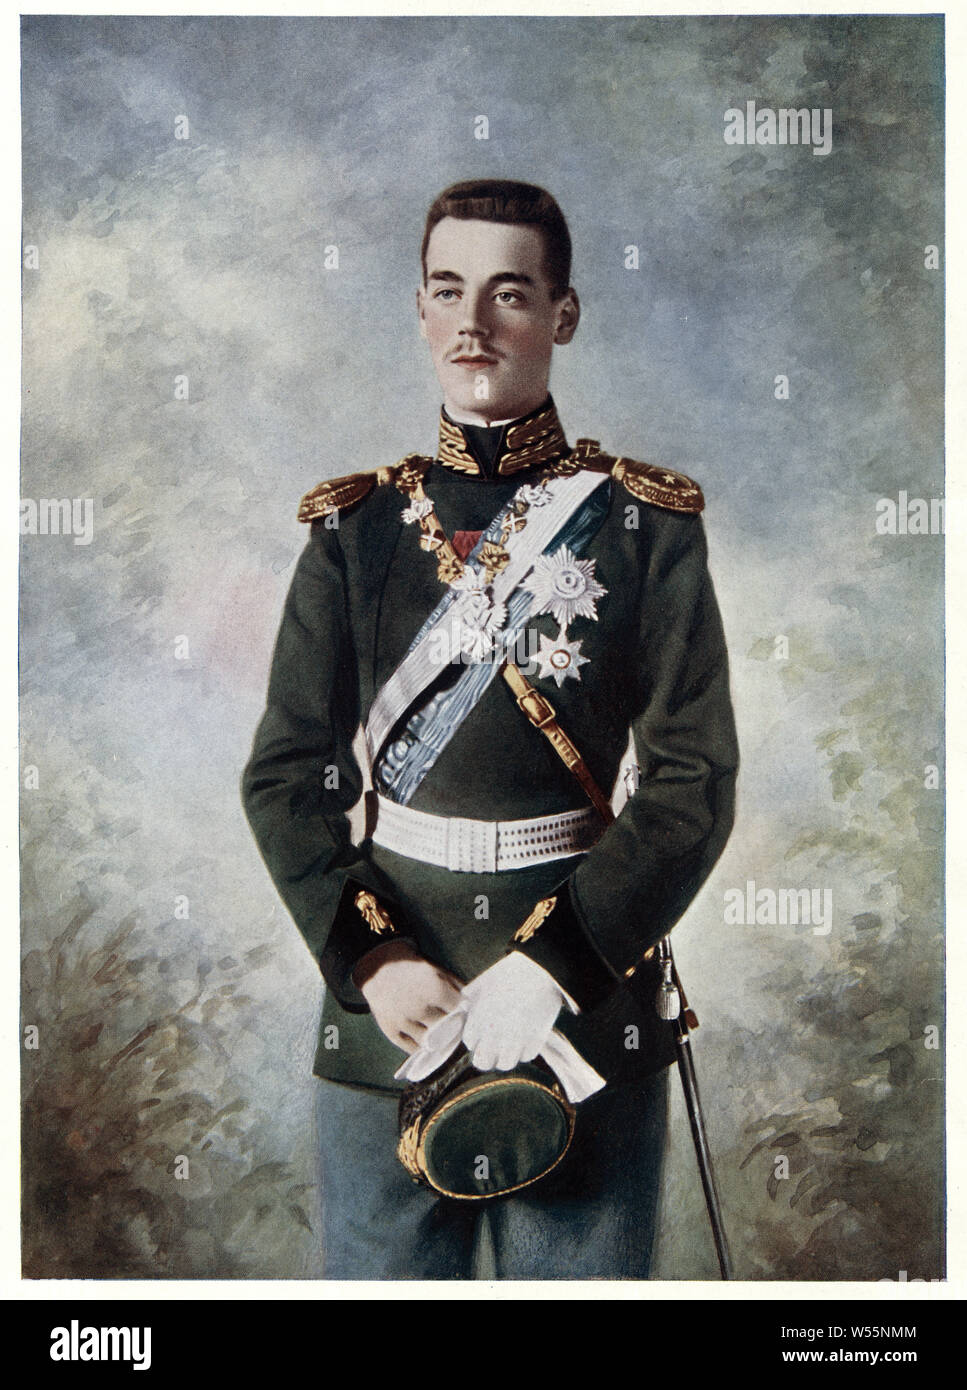 Grand Duke Michael Alexandrovich of Russia the youngest son and fifth child of Emperor Alexander III of Russia and youngest brother of Nicholas II. Stock Photo